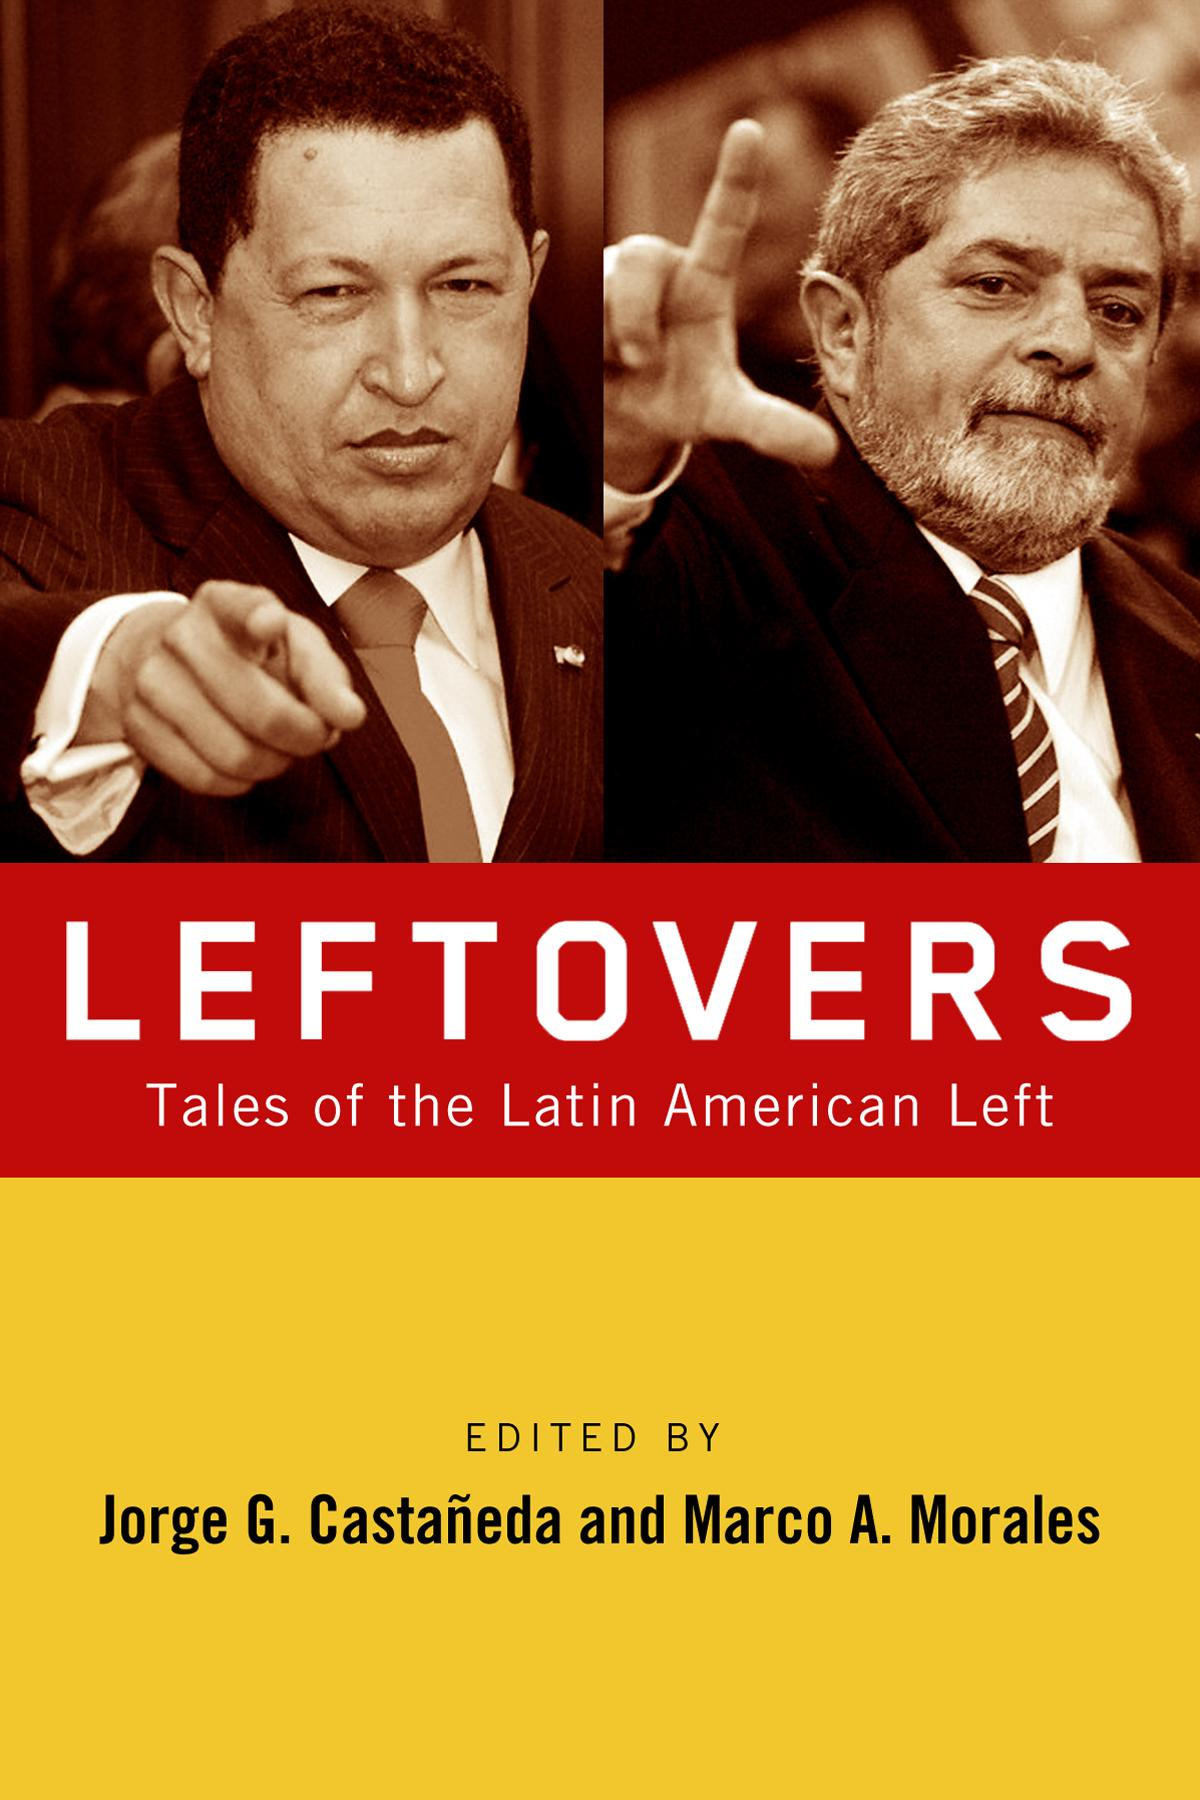 Leftovers: Tales of the Latin American Left